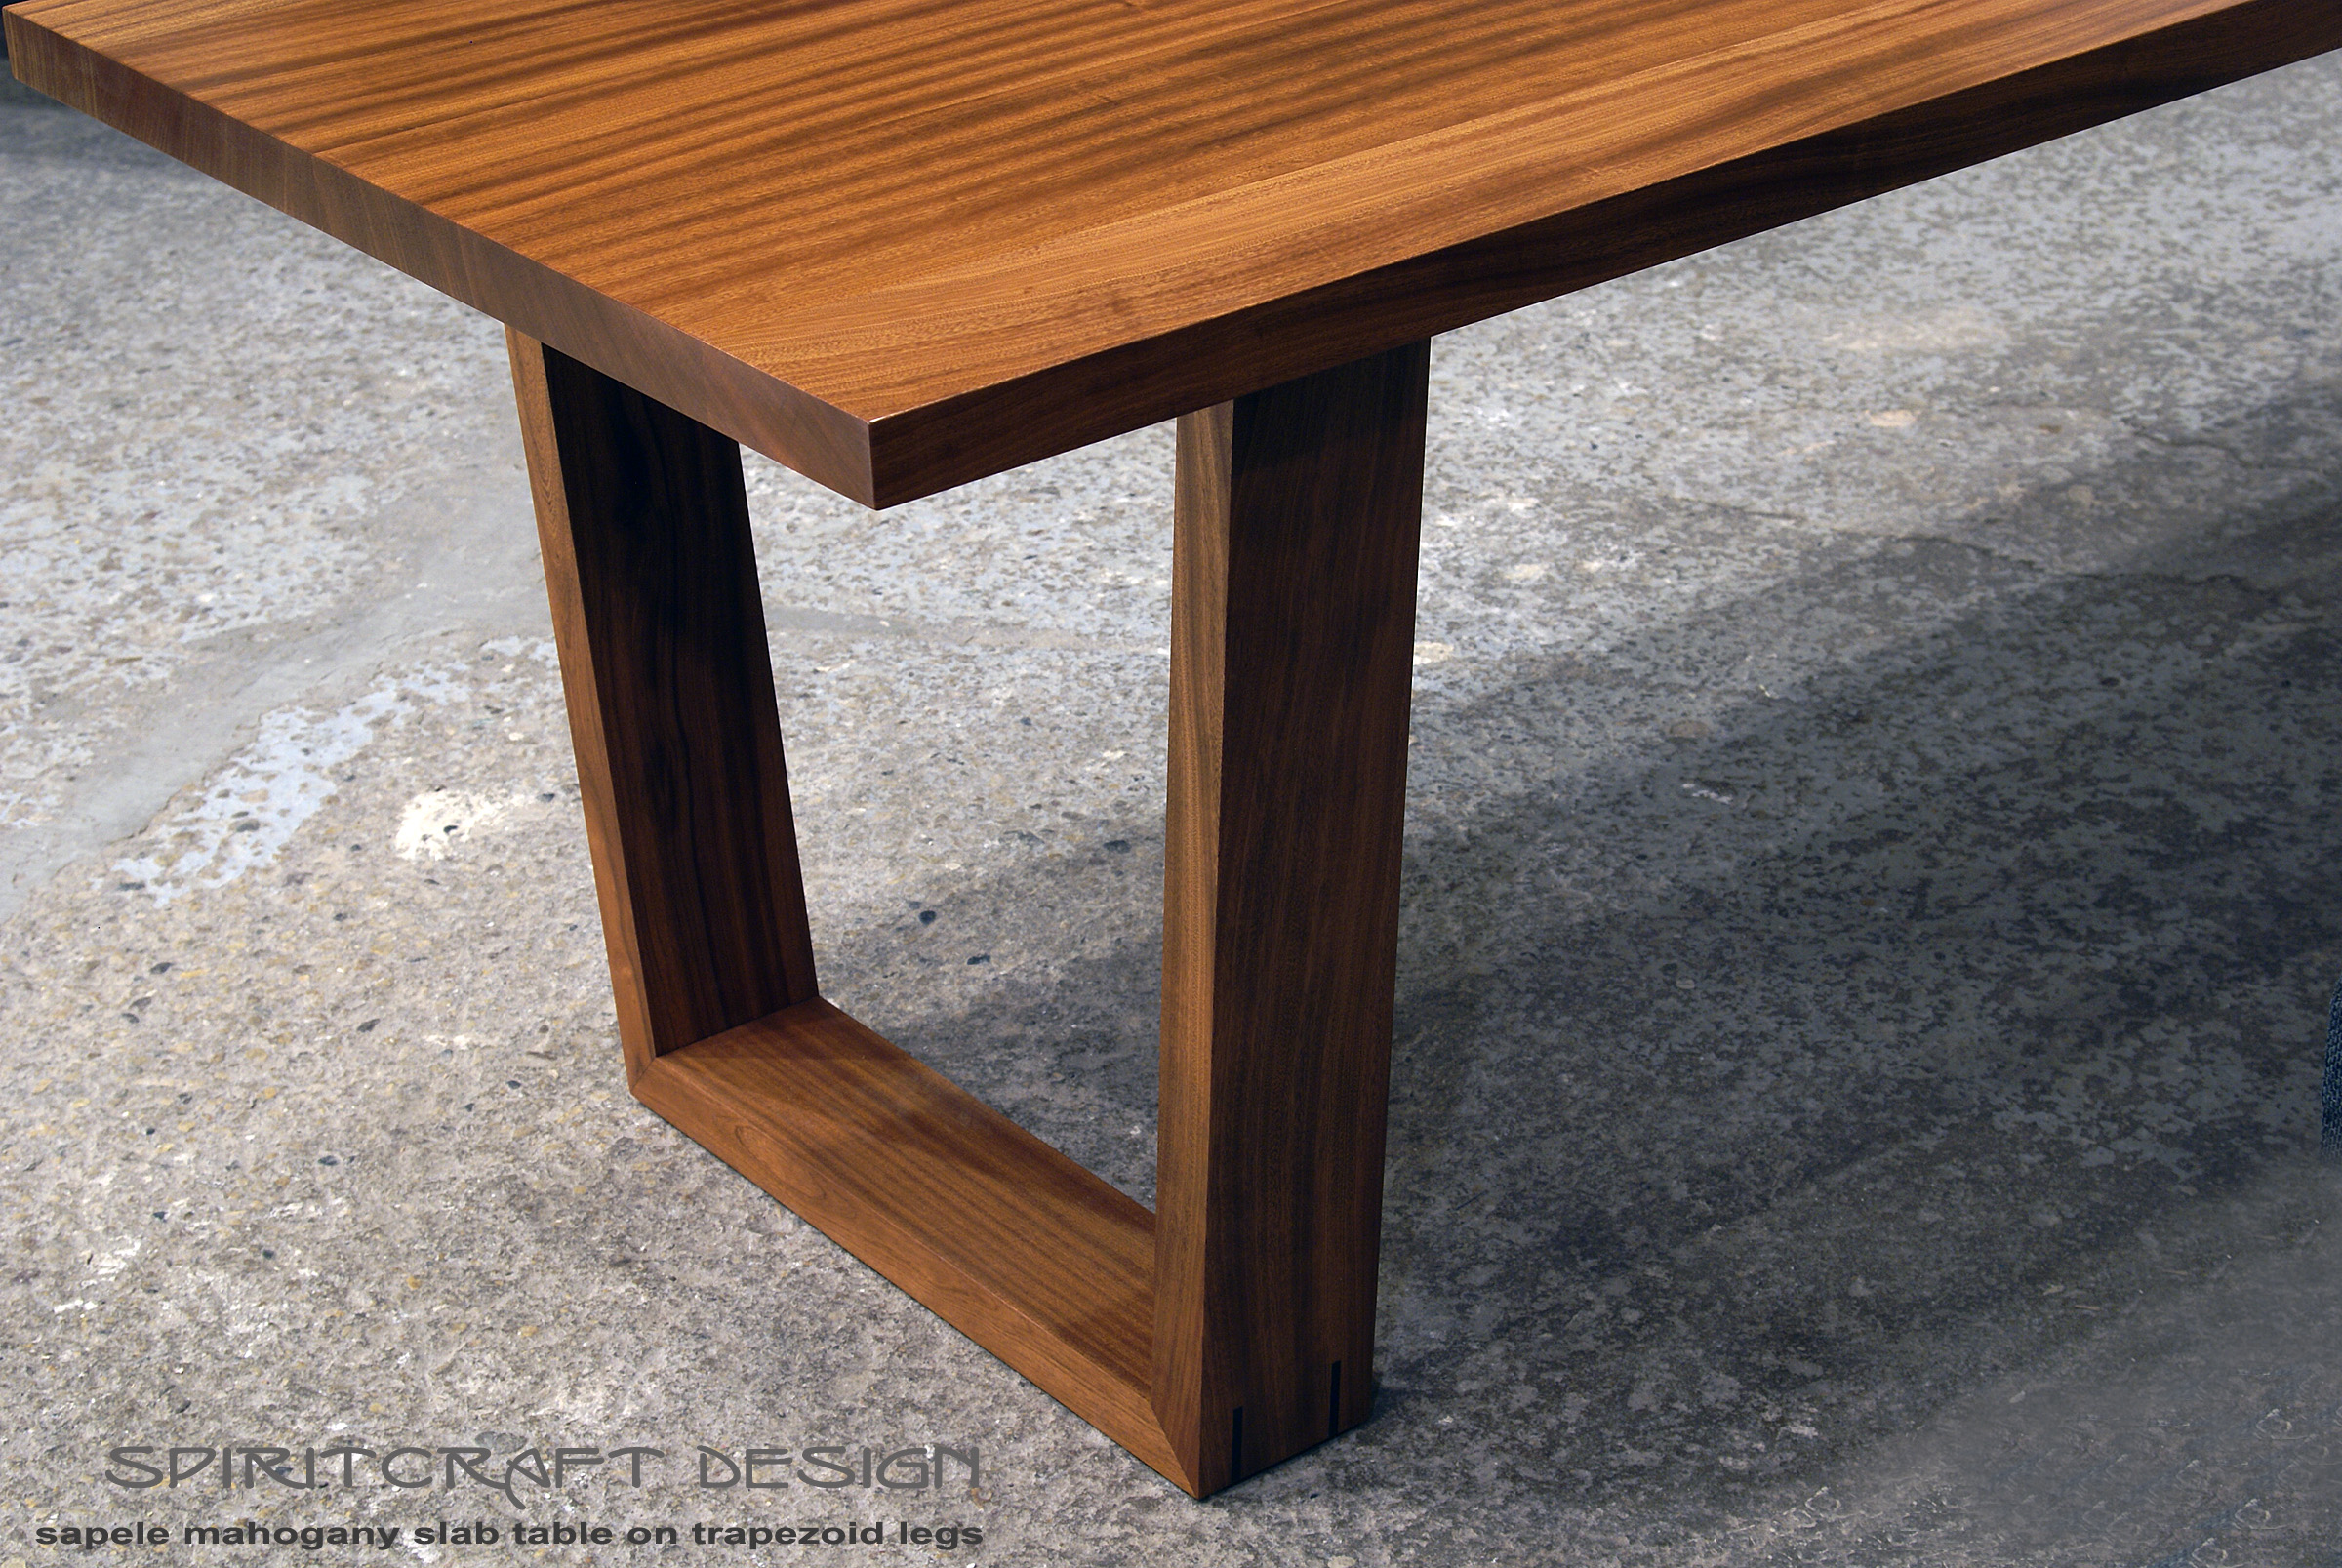 fine handcrafted solid hardwood furniture in dundee il solid hardwood dining table in slab sapele mahogany in mid century modern style by spiritcraft interior